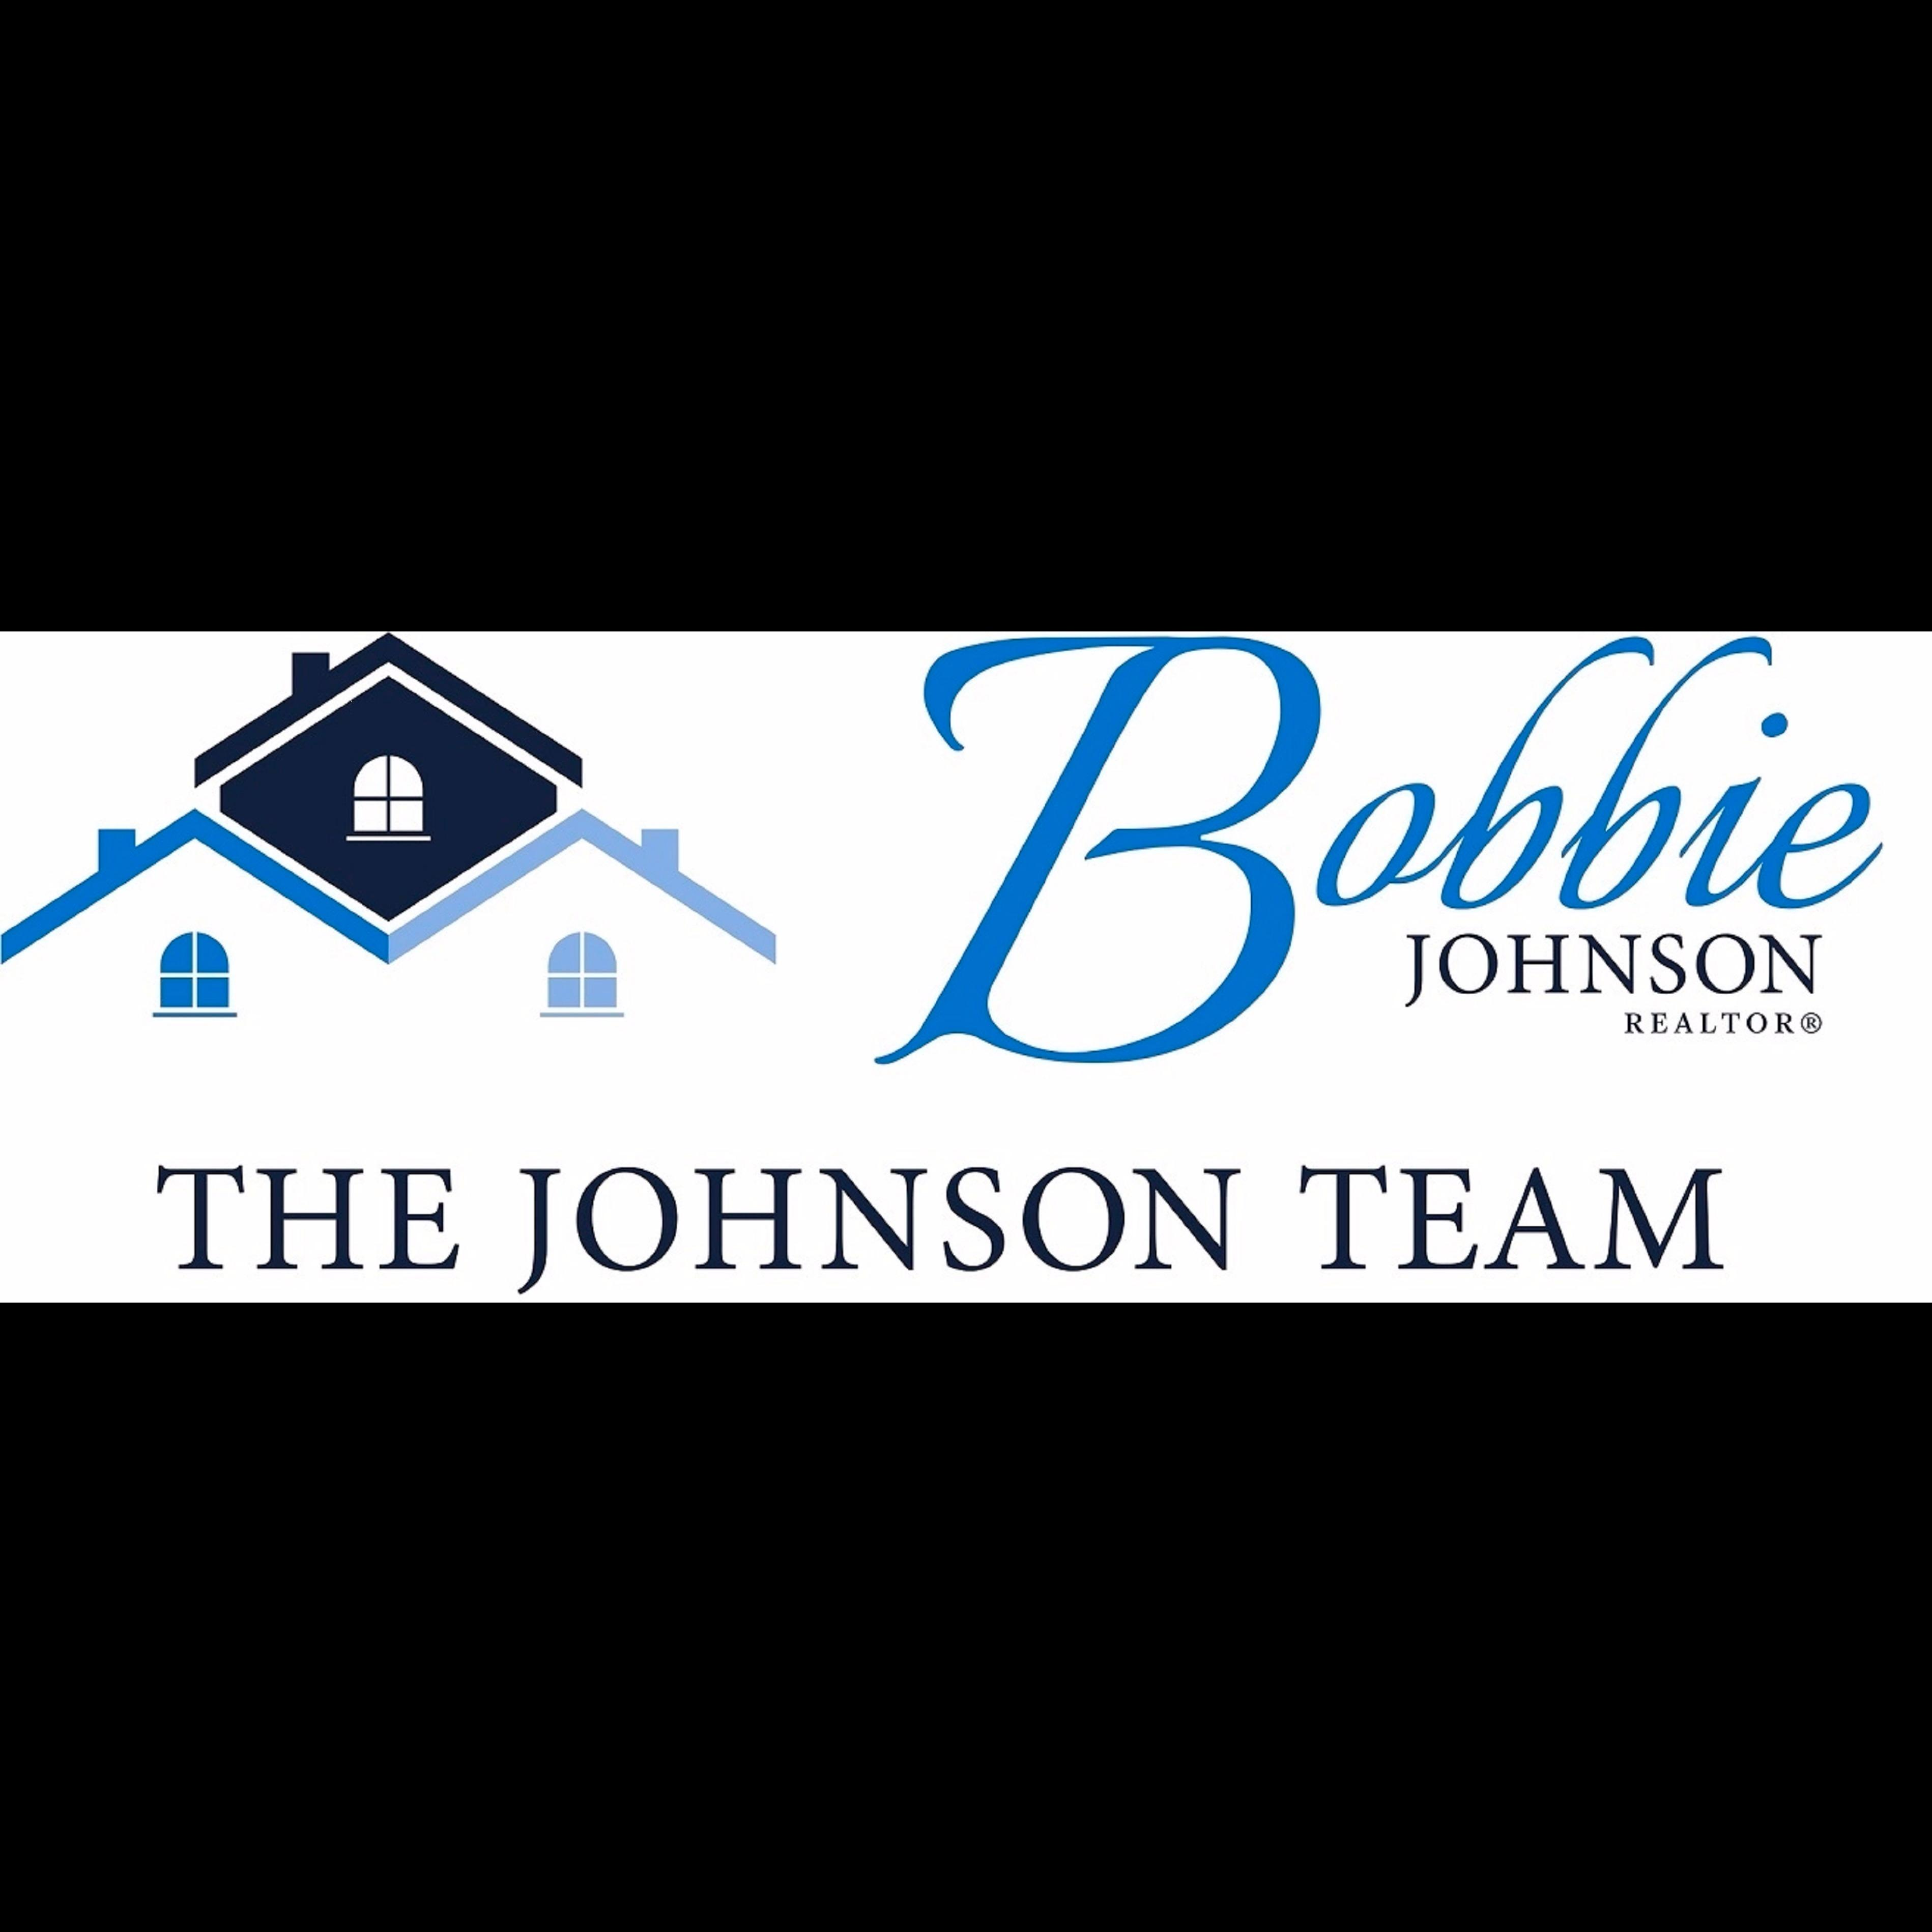 Bobbie Johnson Relator at Reliance Real Estate Services